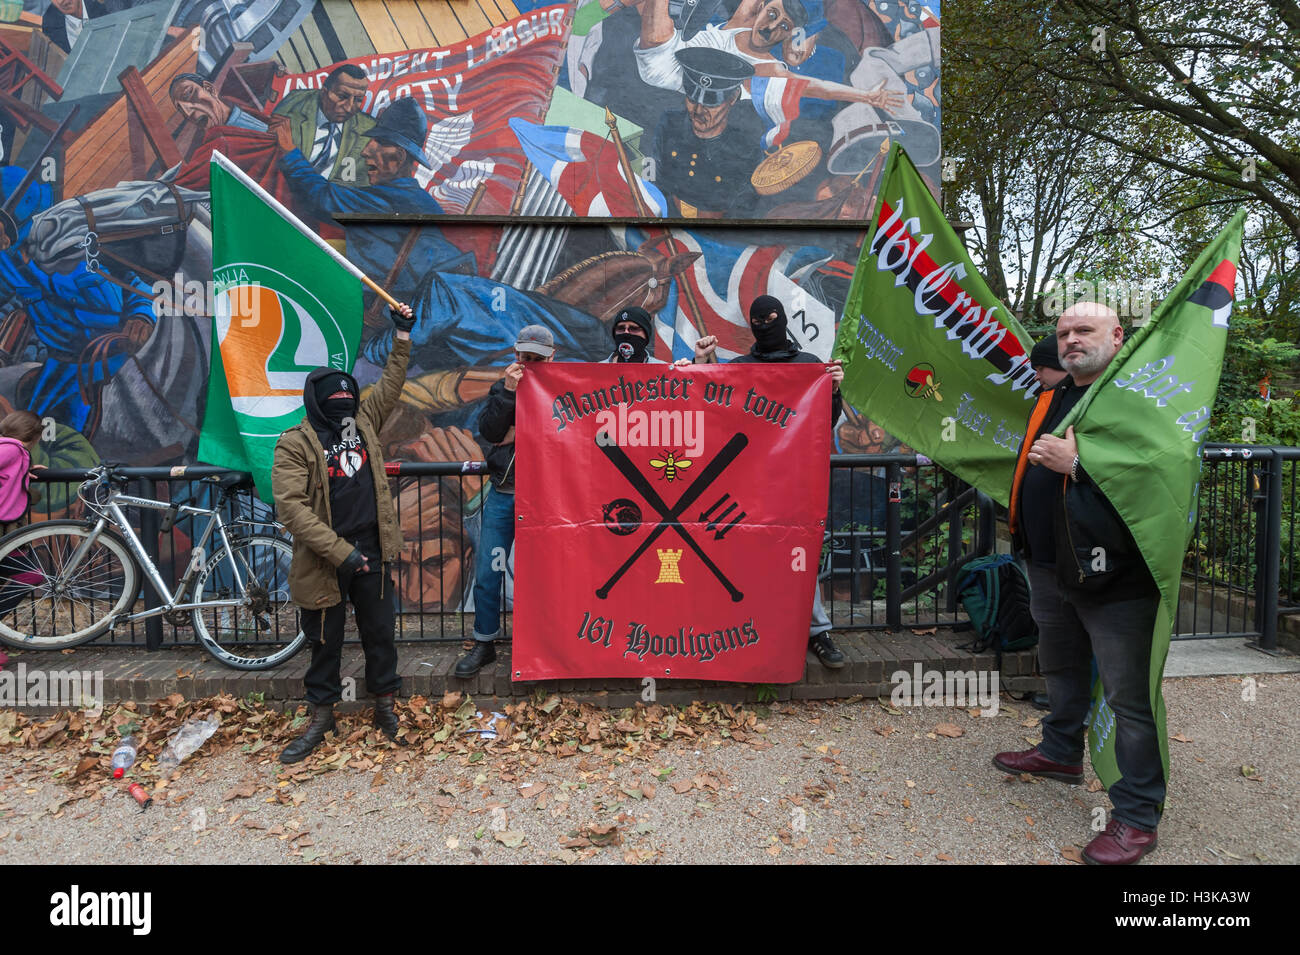 London, UK. 9th October 2016. Anti-fascist group Manchester on Tour pose with their banner in front of the Cable - Stock Image